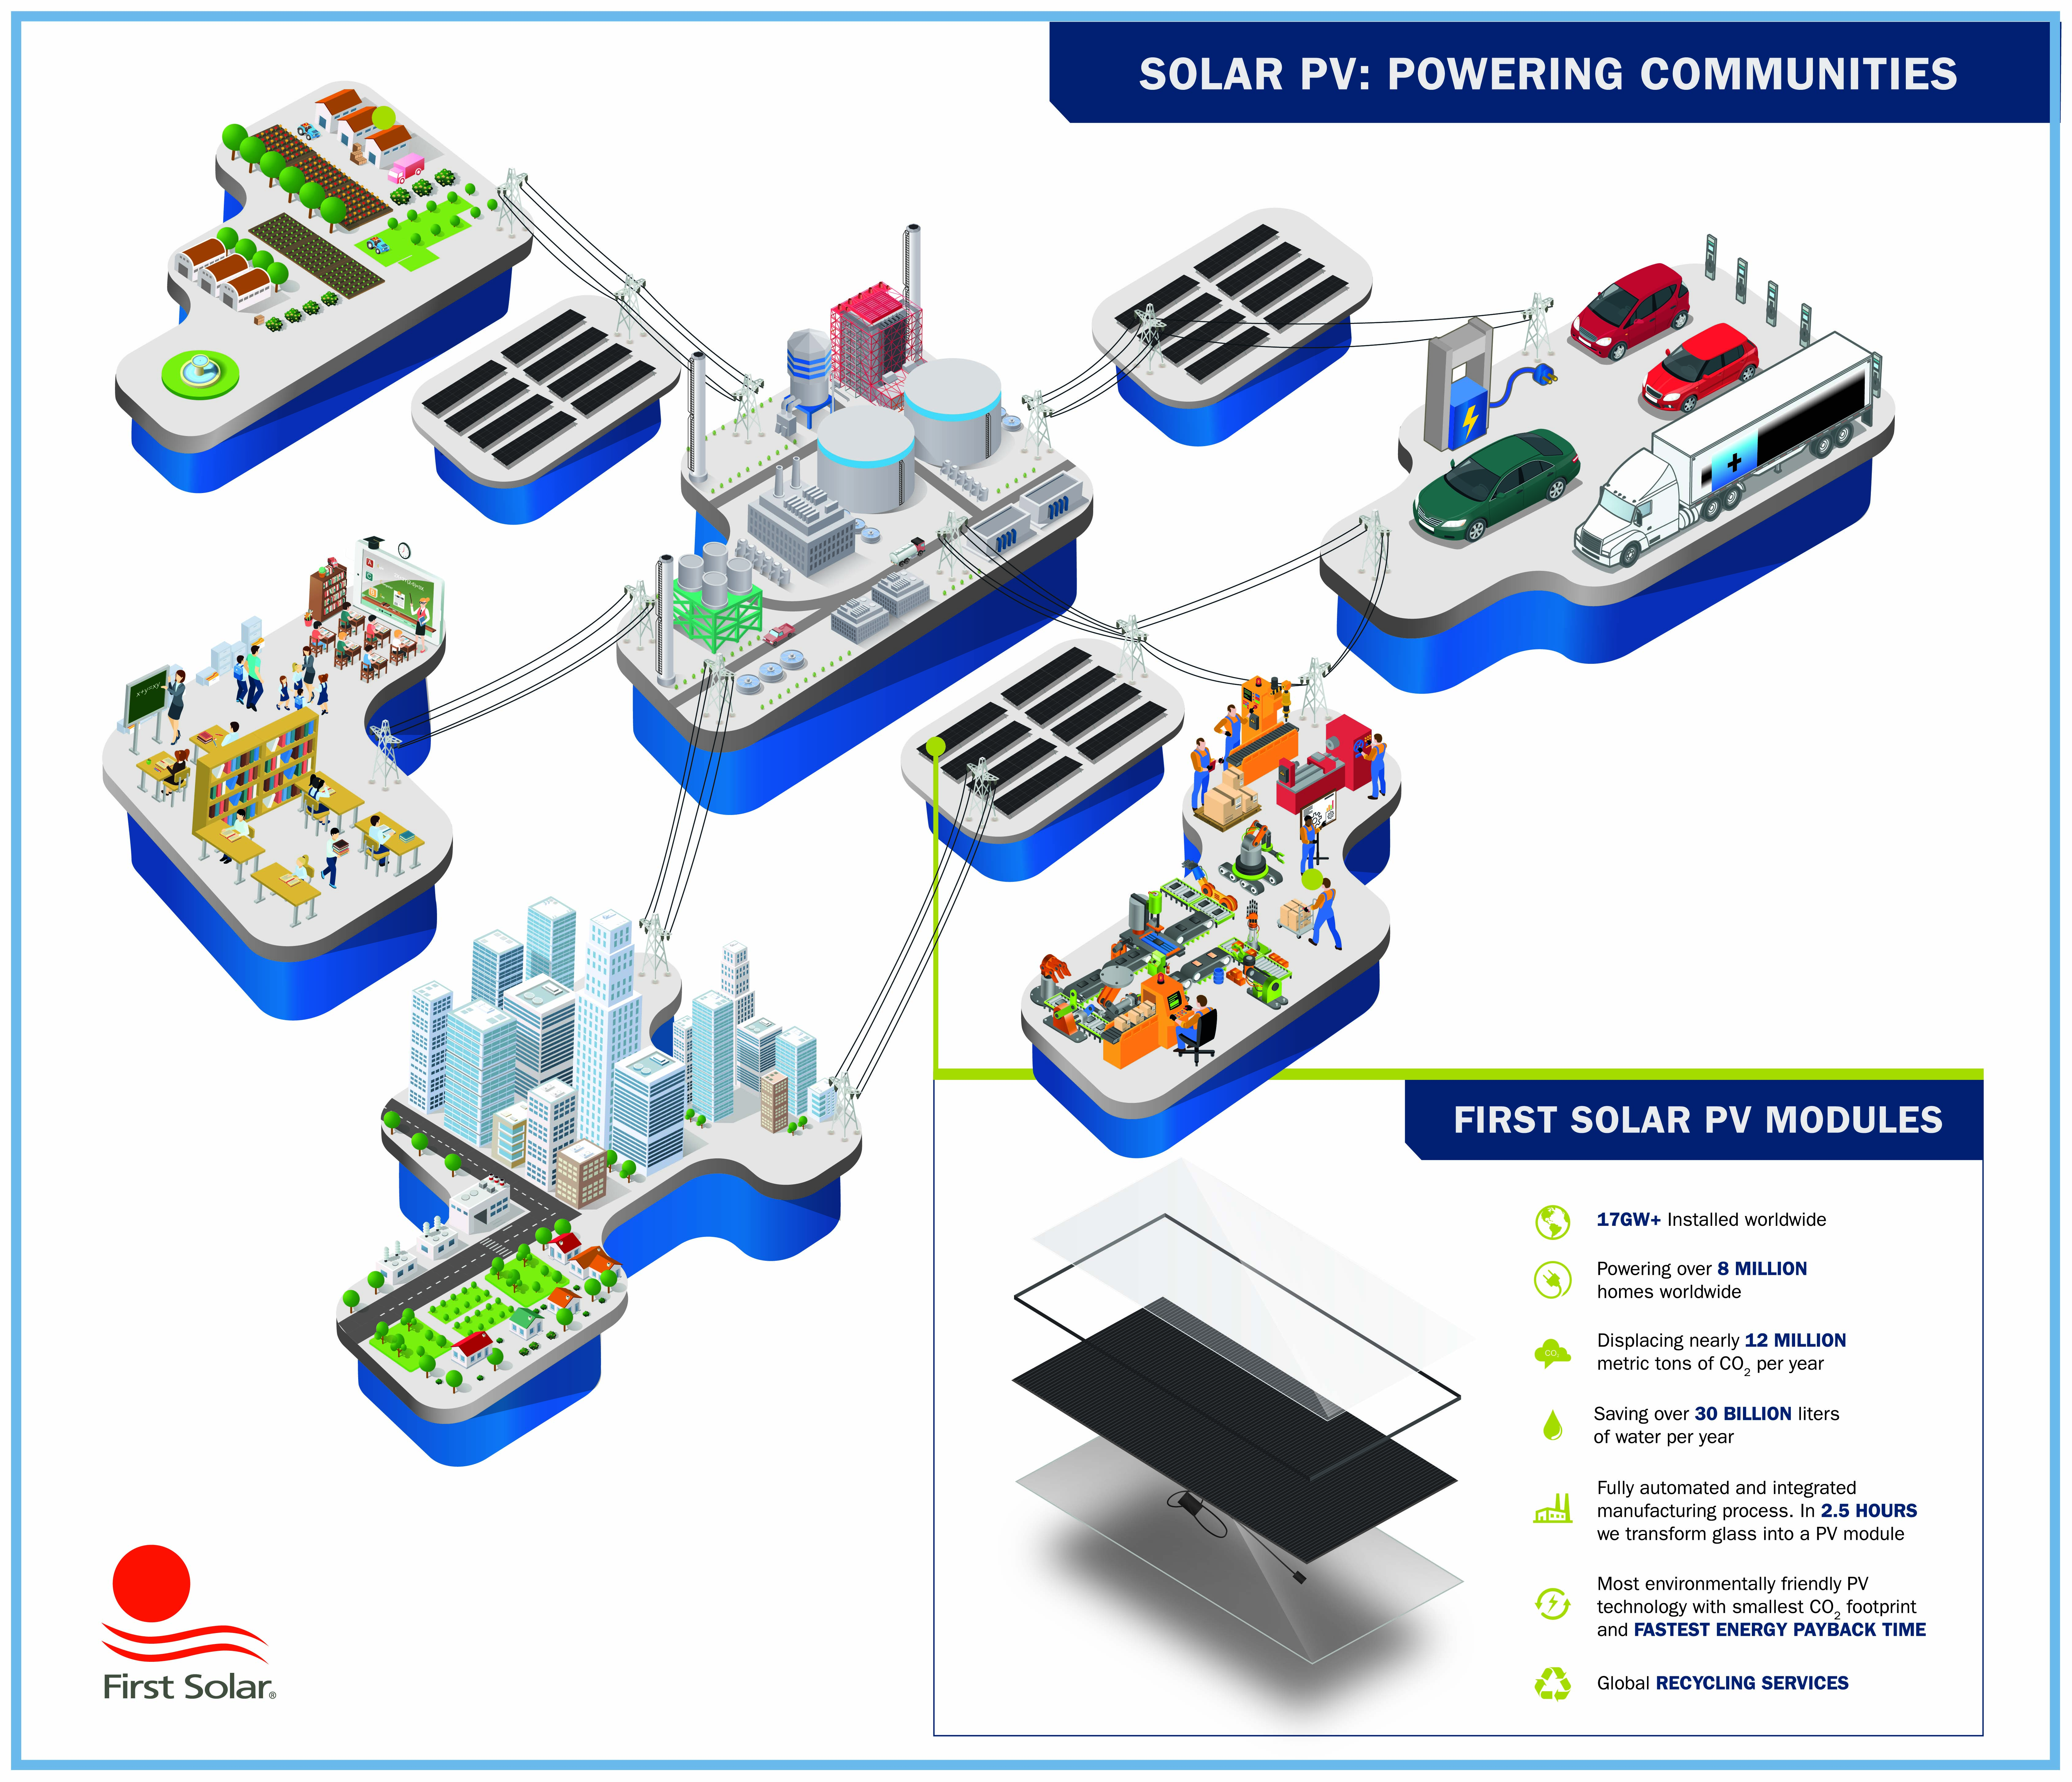 Solar PV: Power Communities|